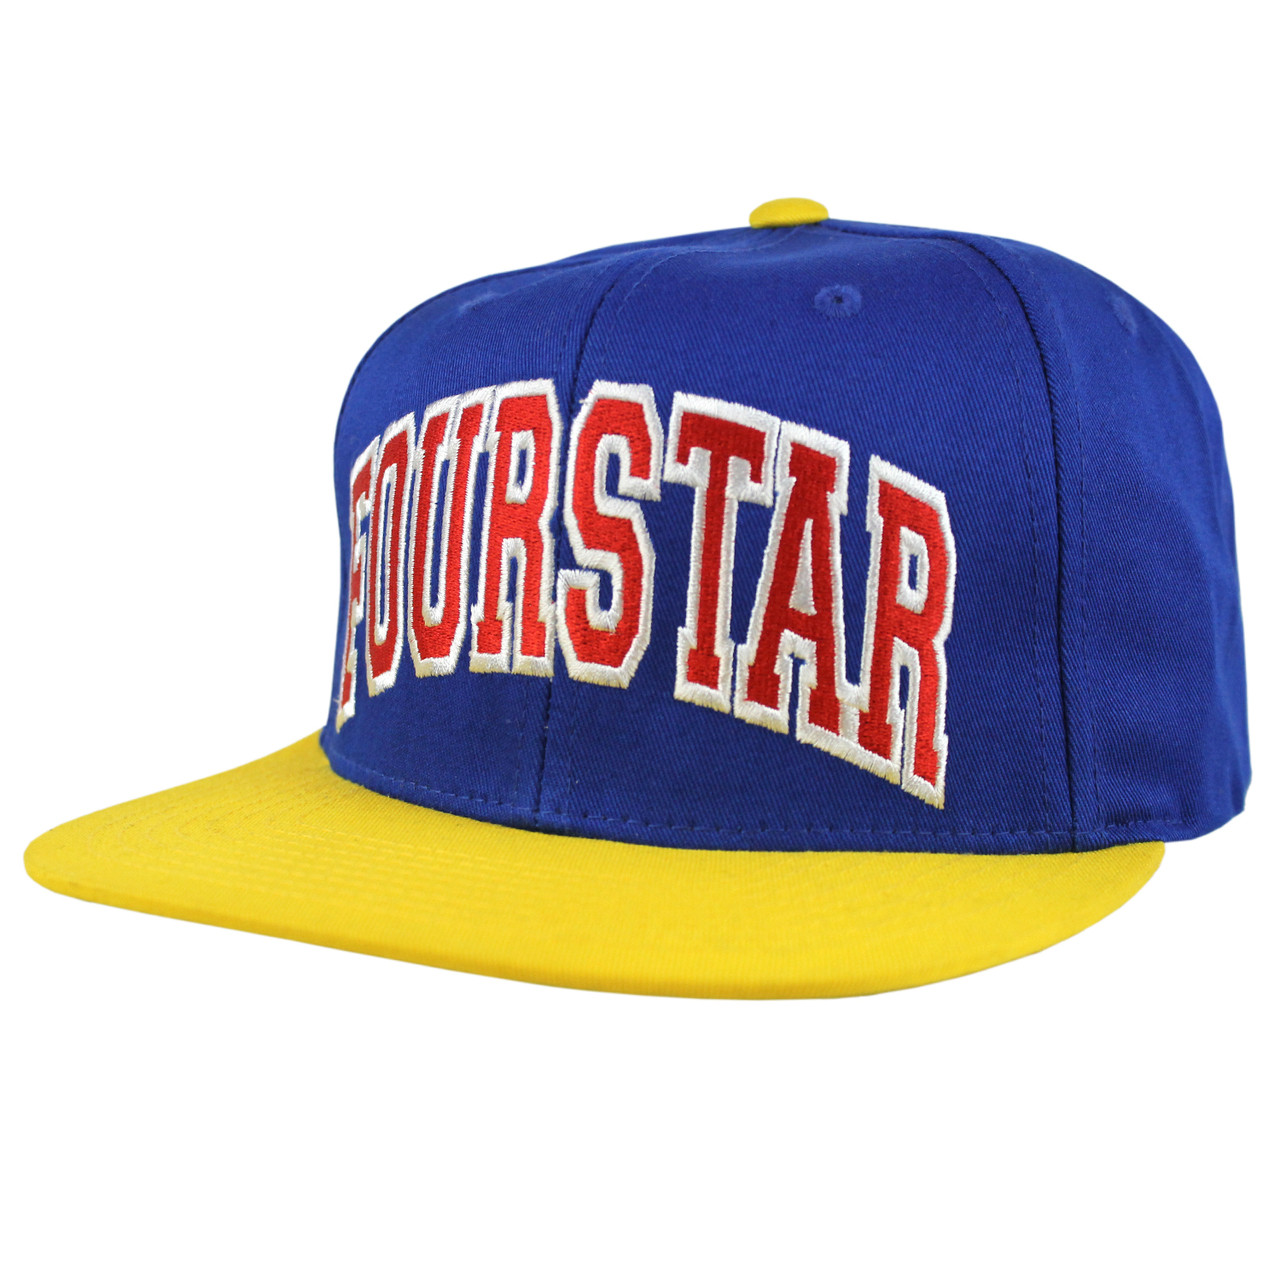 2d1359fb Fourstar Hat BOLD STARTER BLUE/YELLOW SNAPBACK